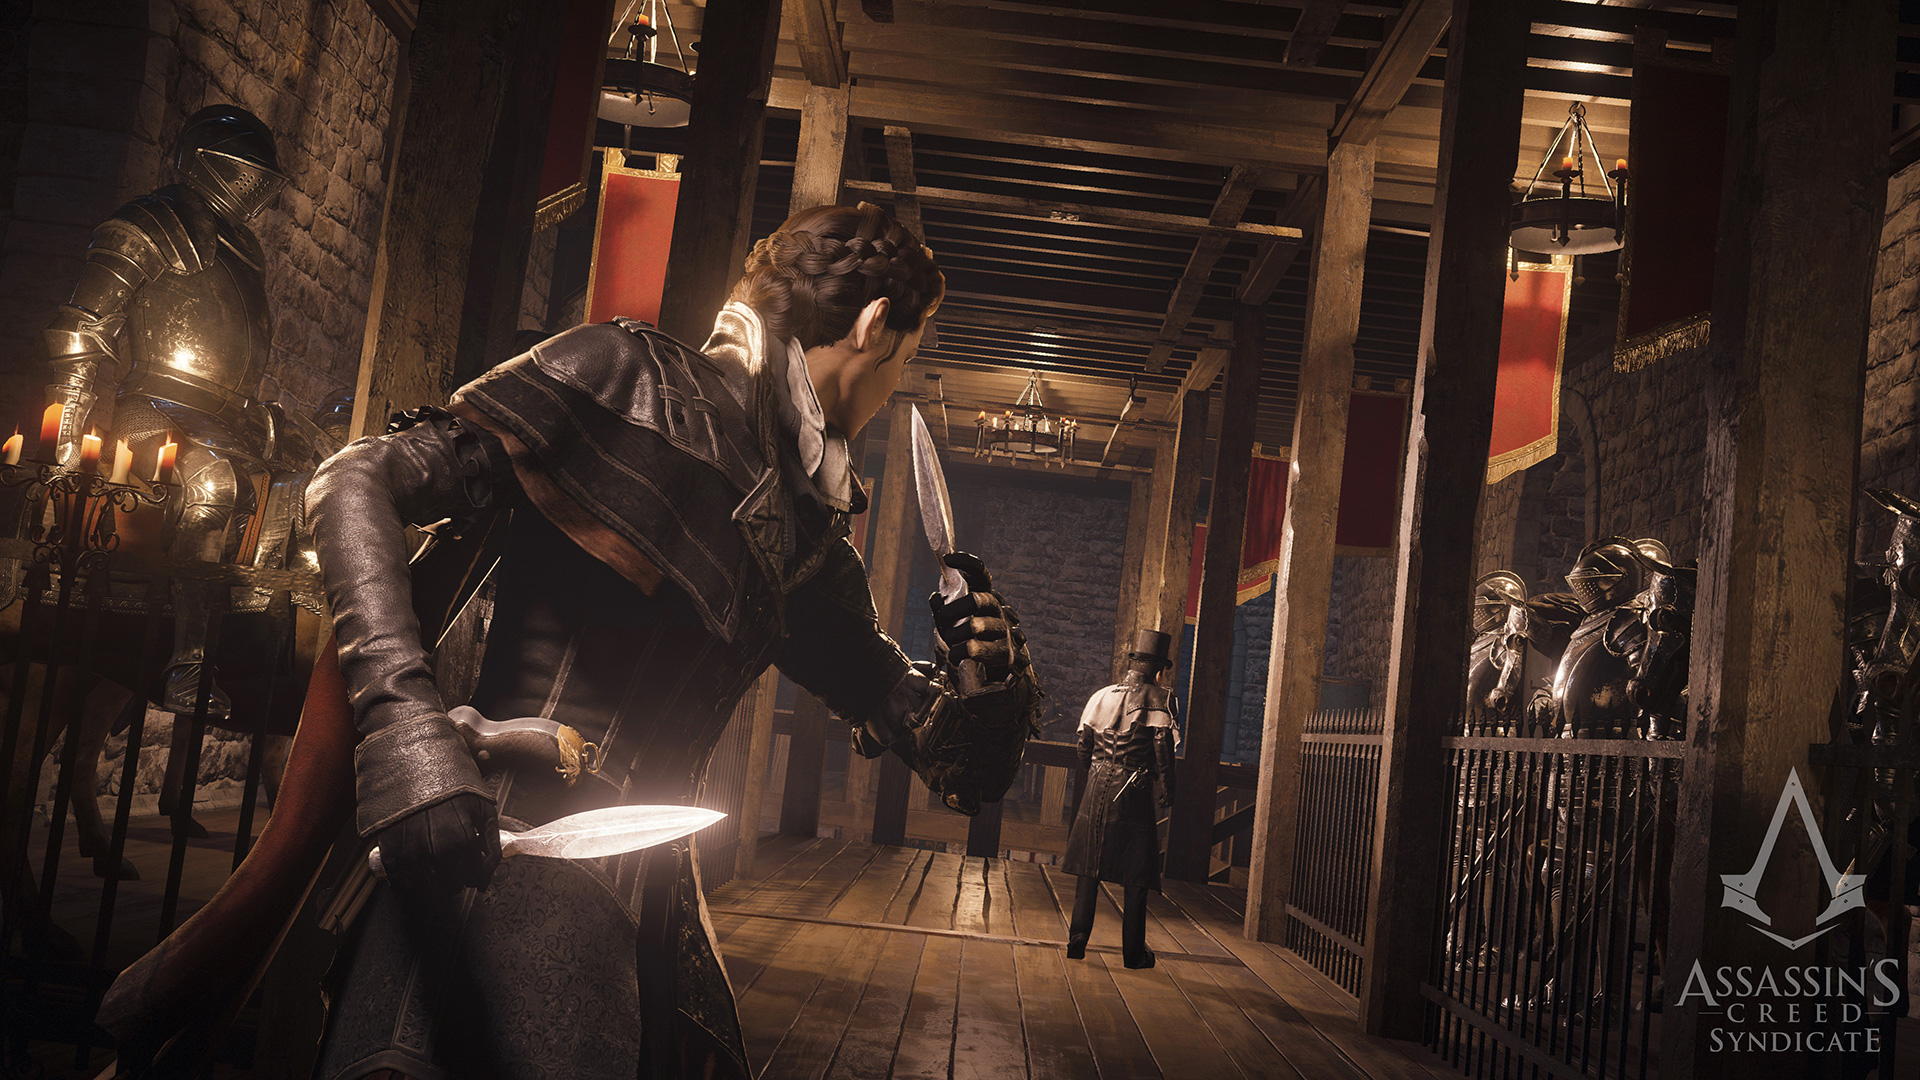 Assassin-s Creed Syndicate - Courtoisie Ubisoft-5